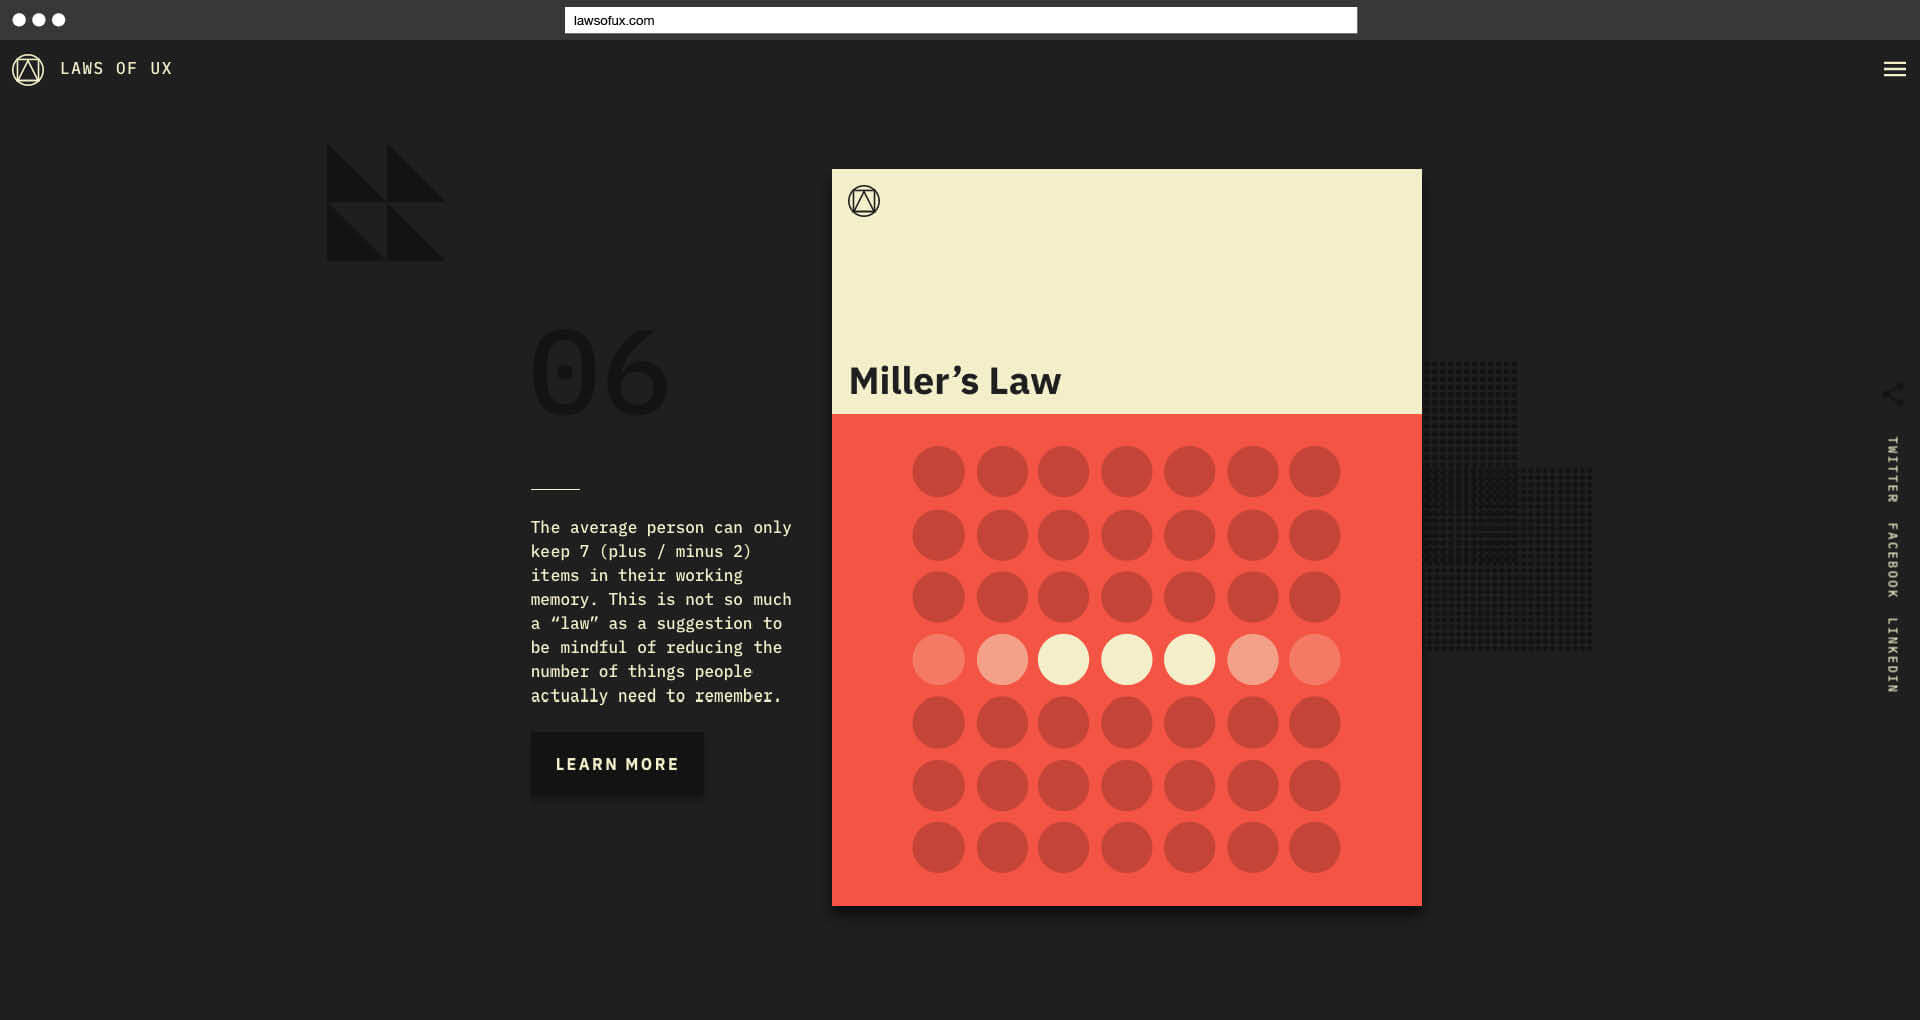 Laws of UX Jon Yablonski Miller's Law